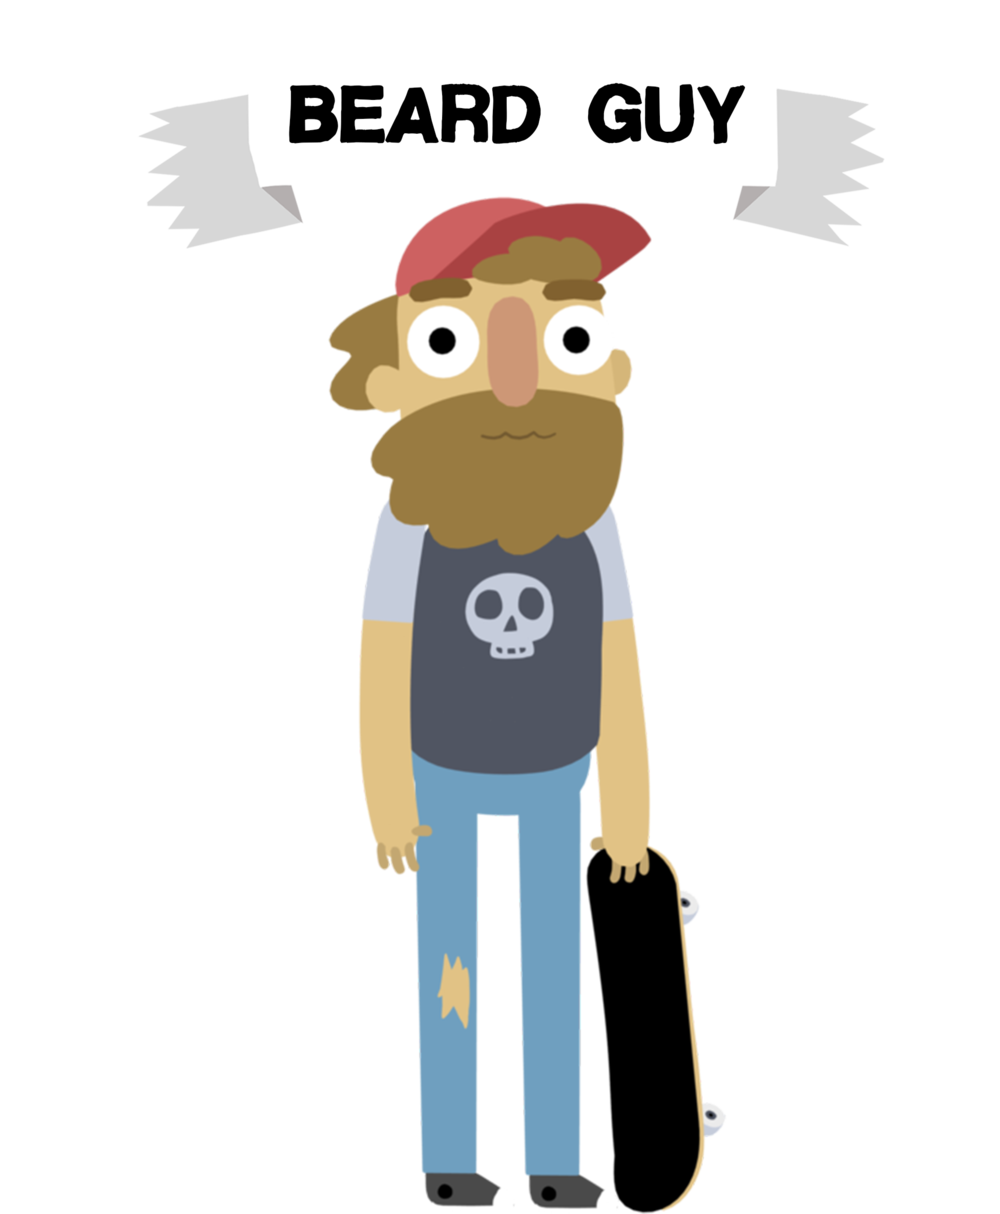 beard_dude.png